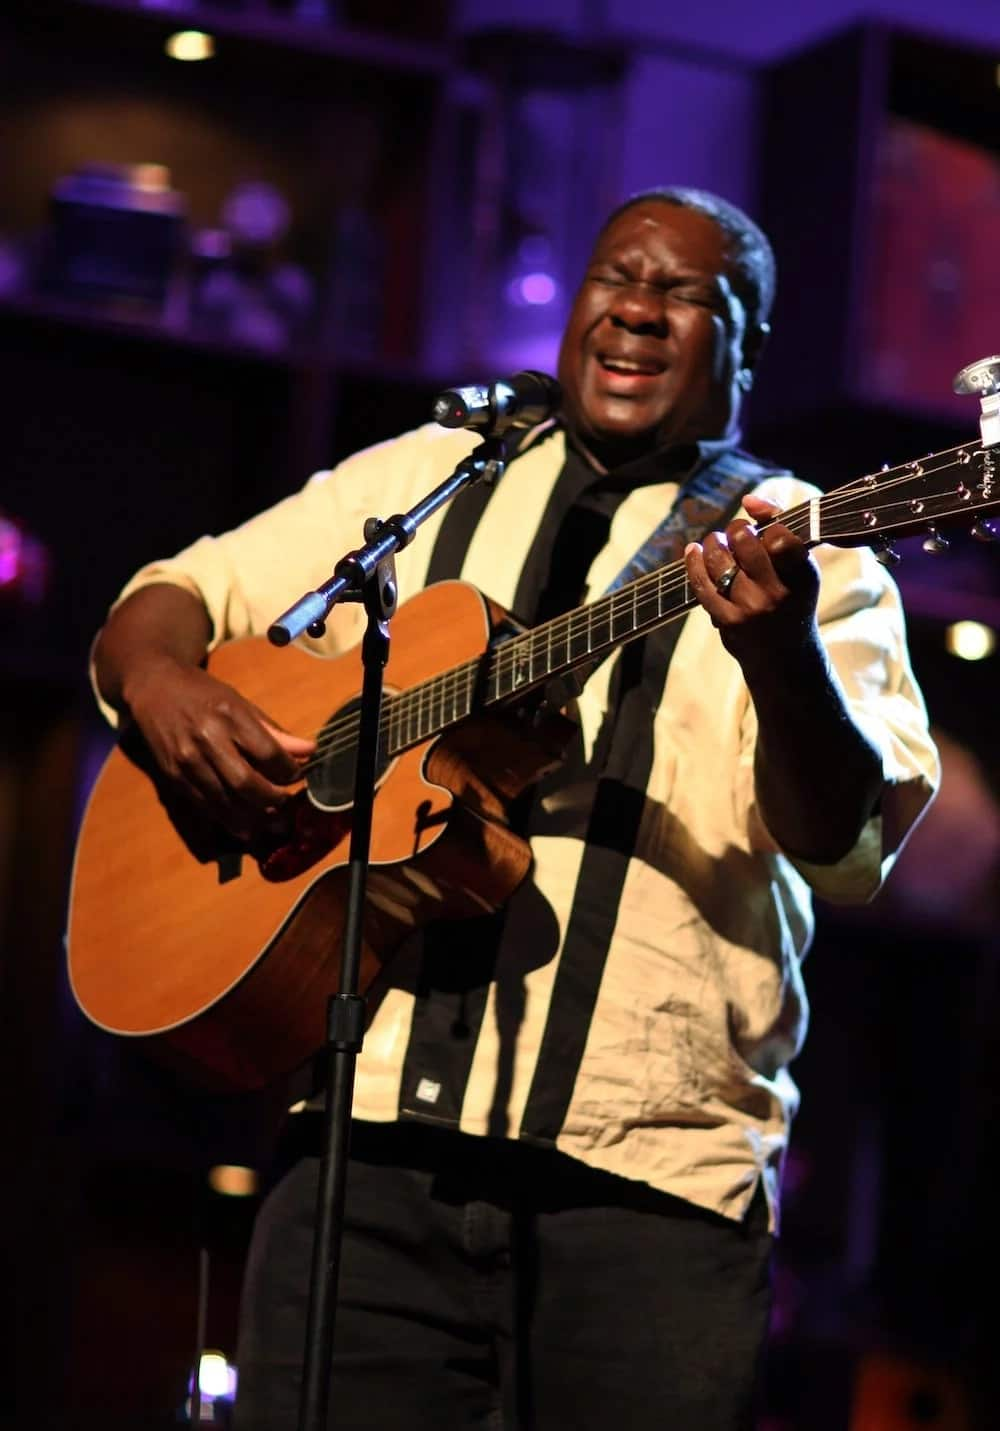 Legendary musician Vusi Mahlasela during a performance. Source: Google